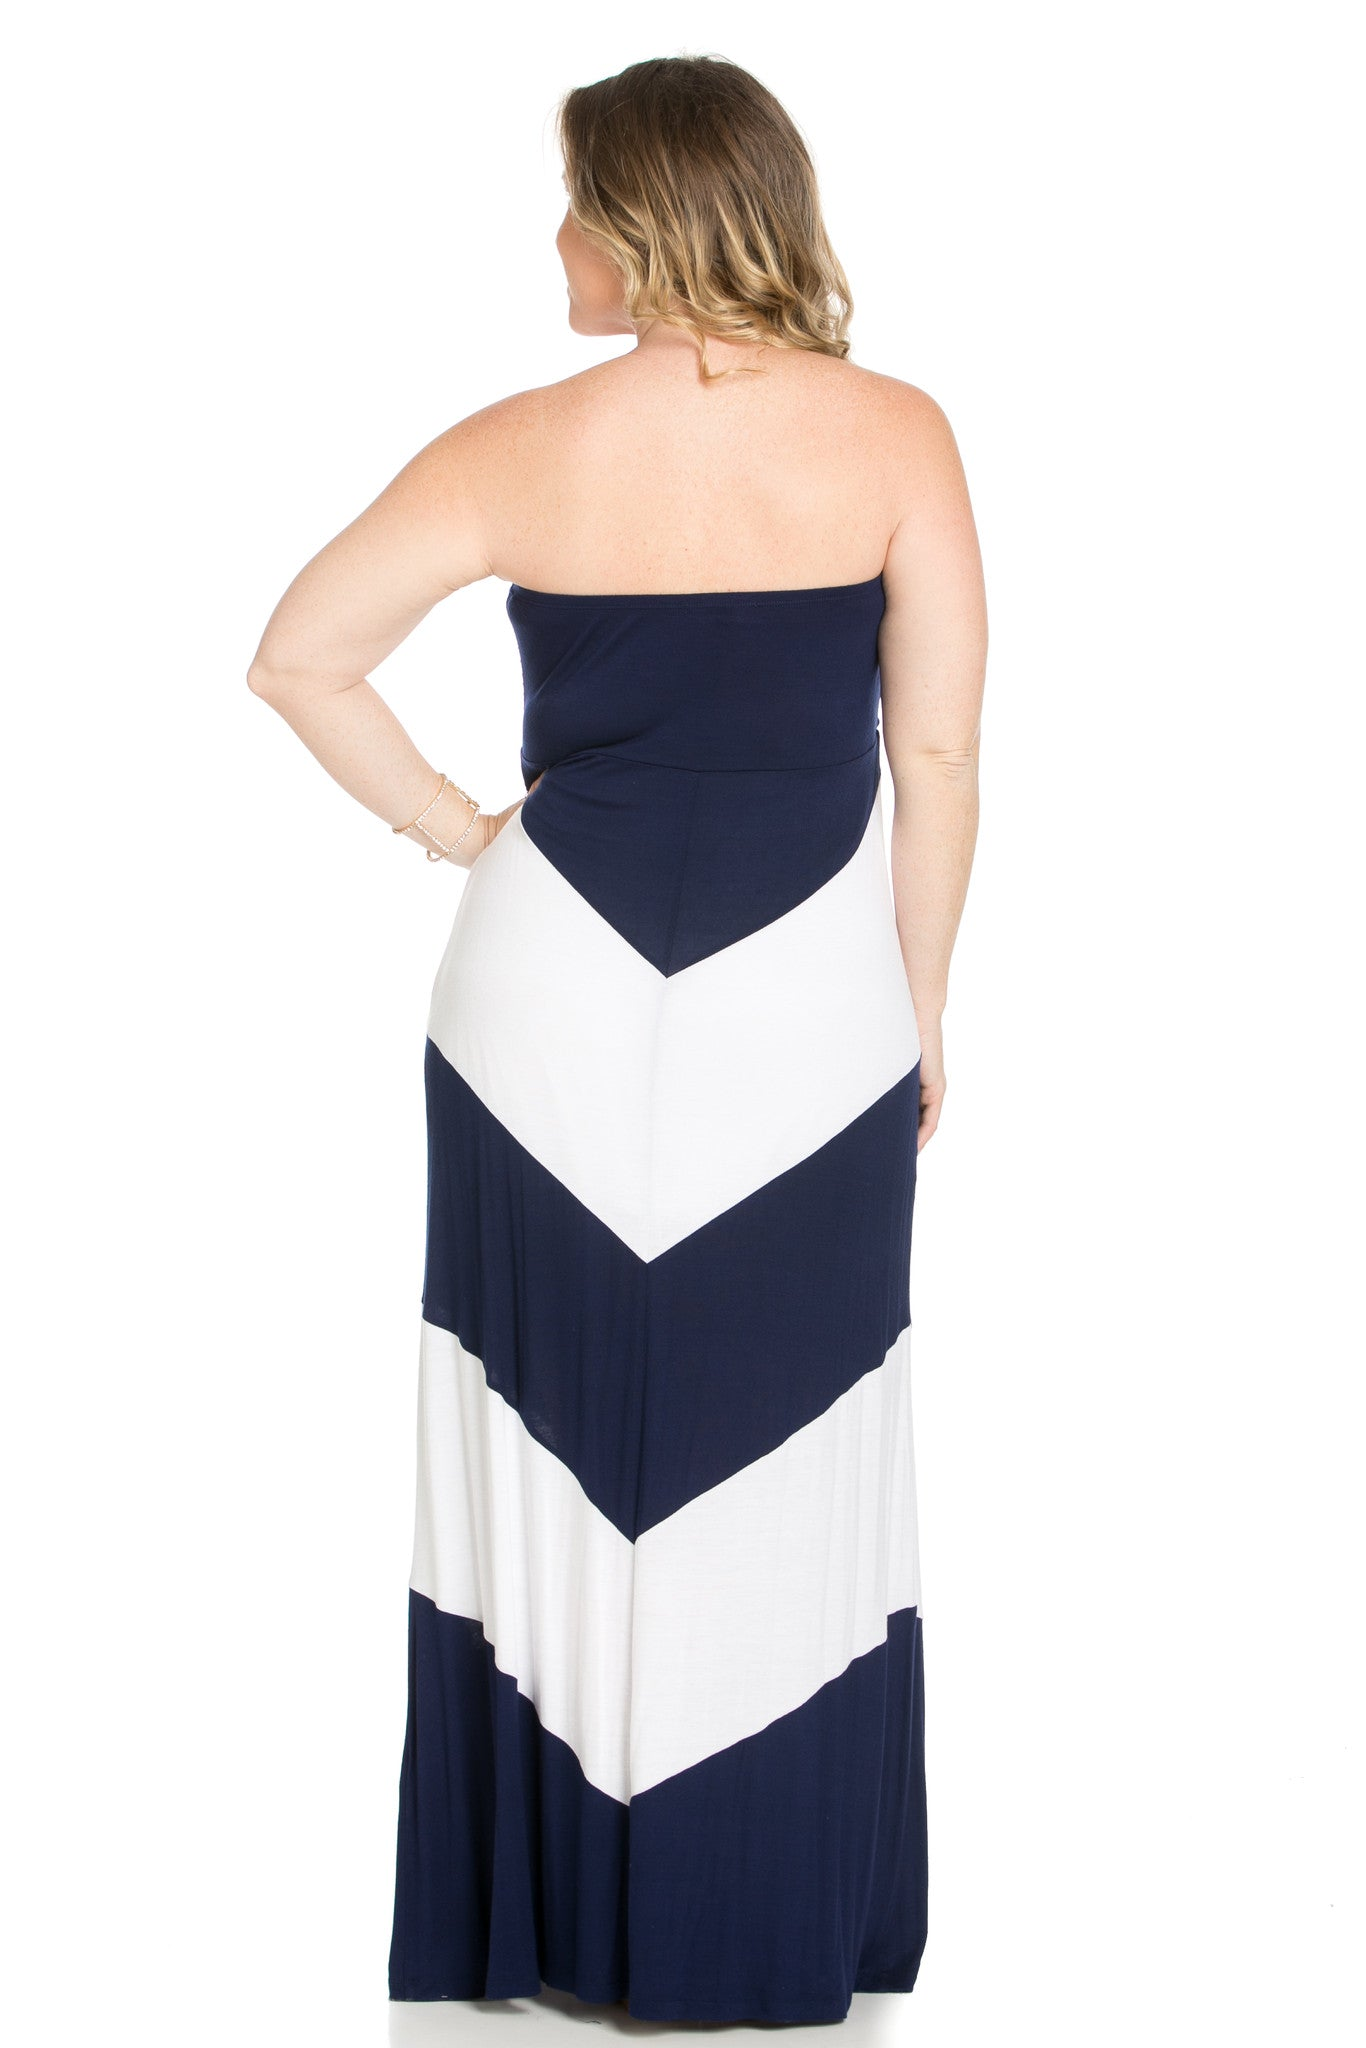 Strapless Long tube Dress Navy/White Cause You're Chevron - Dresses - My Yuccie - 8